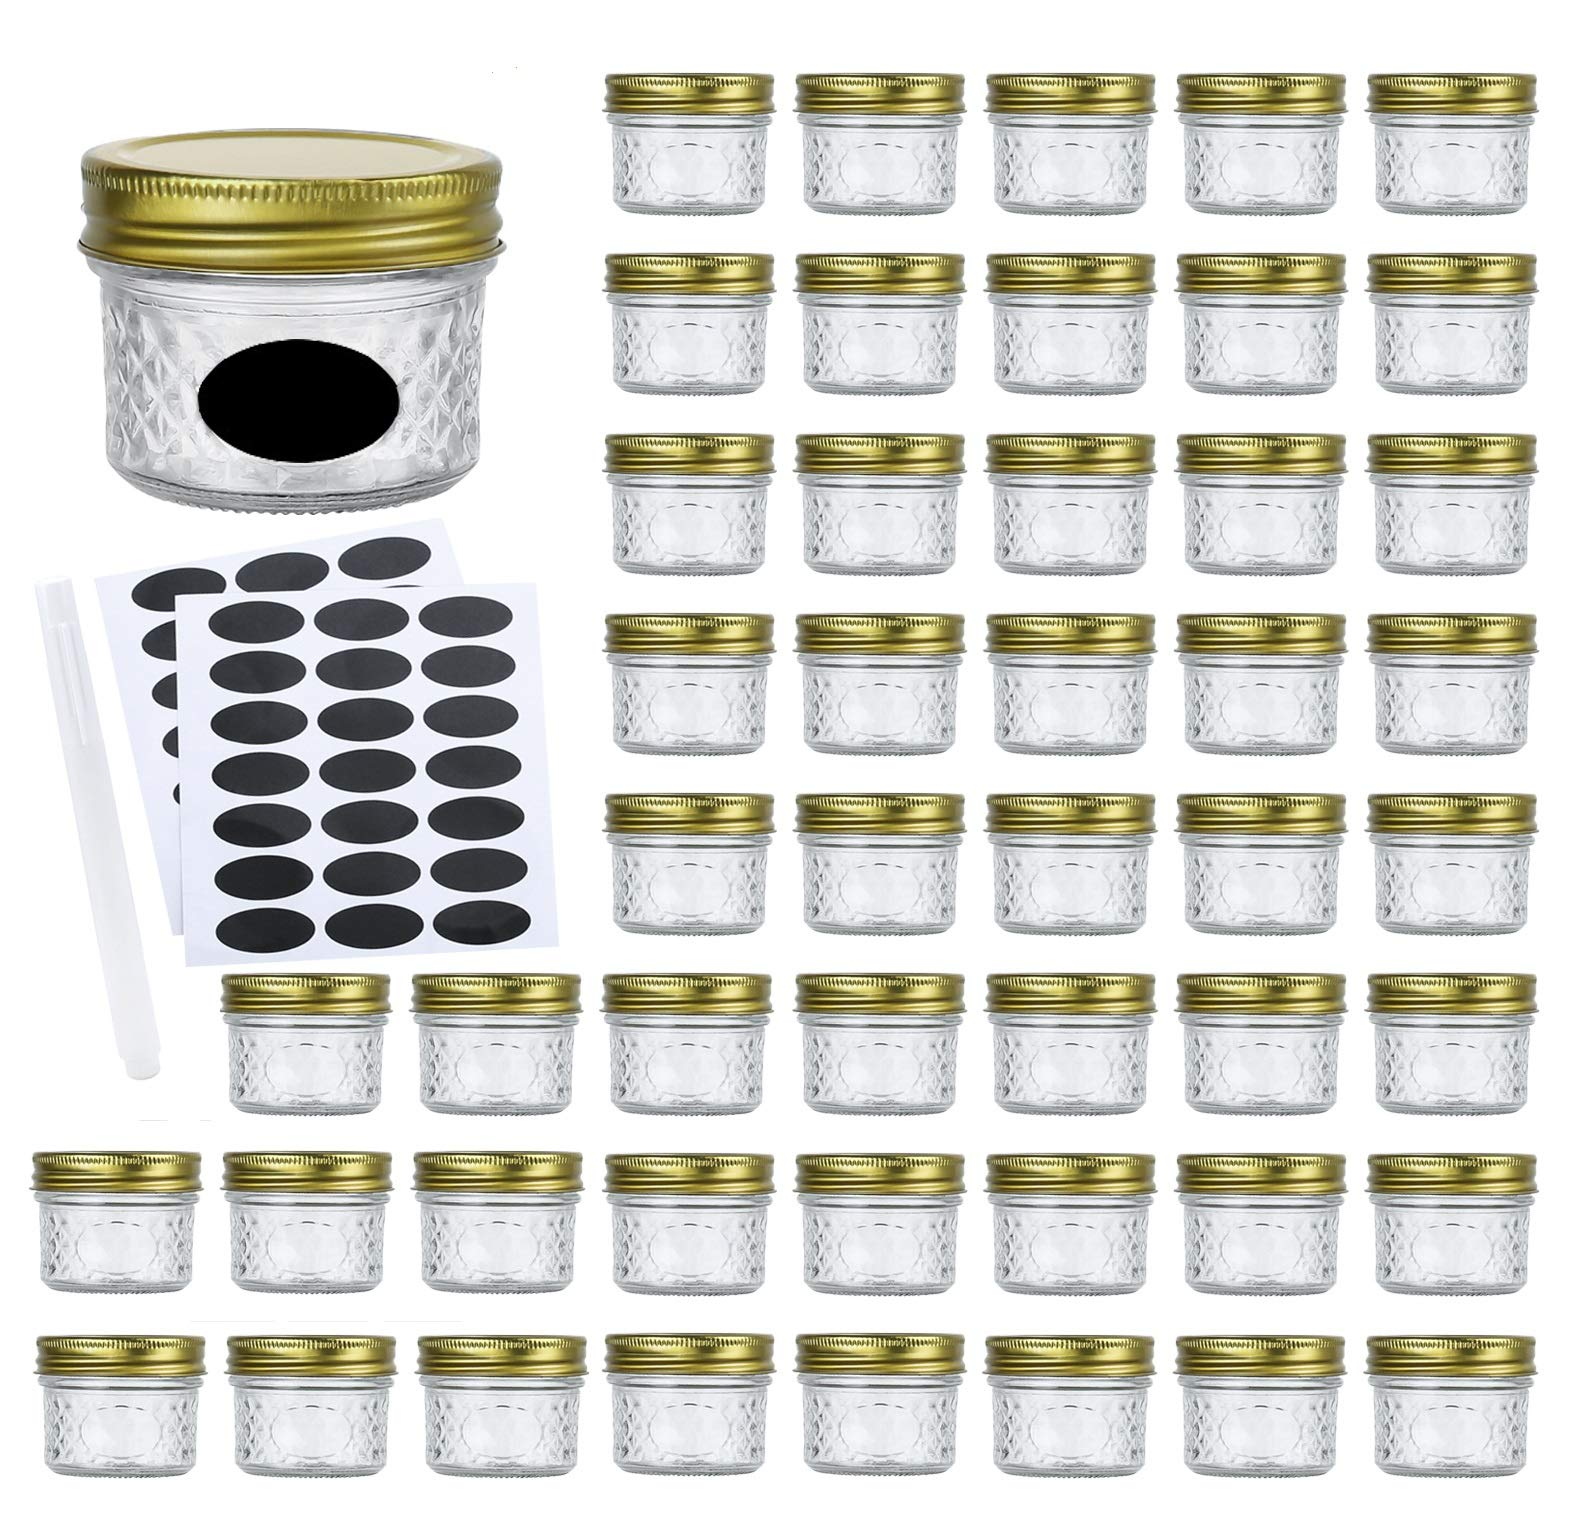 Encheng 4oz Glass Jars With Regular Lids,Mini Wide Mouth Mason Jars,Clear Small Canning Jars With Gold Lids,Canning Jars For Honey,Herbs,Jam,Jelly,Baby Foods,Wedding Favor,Shower Favors 40 Pack ...